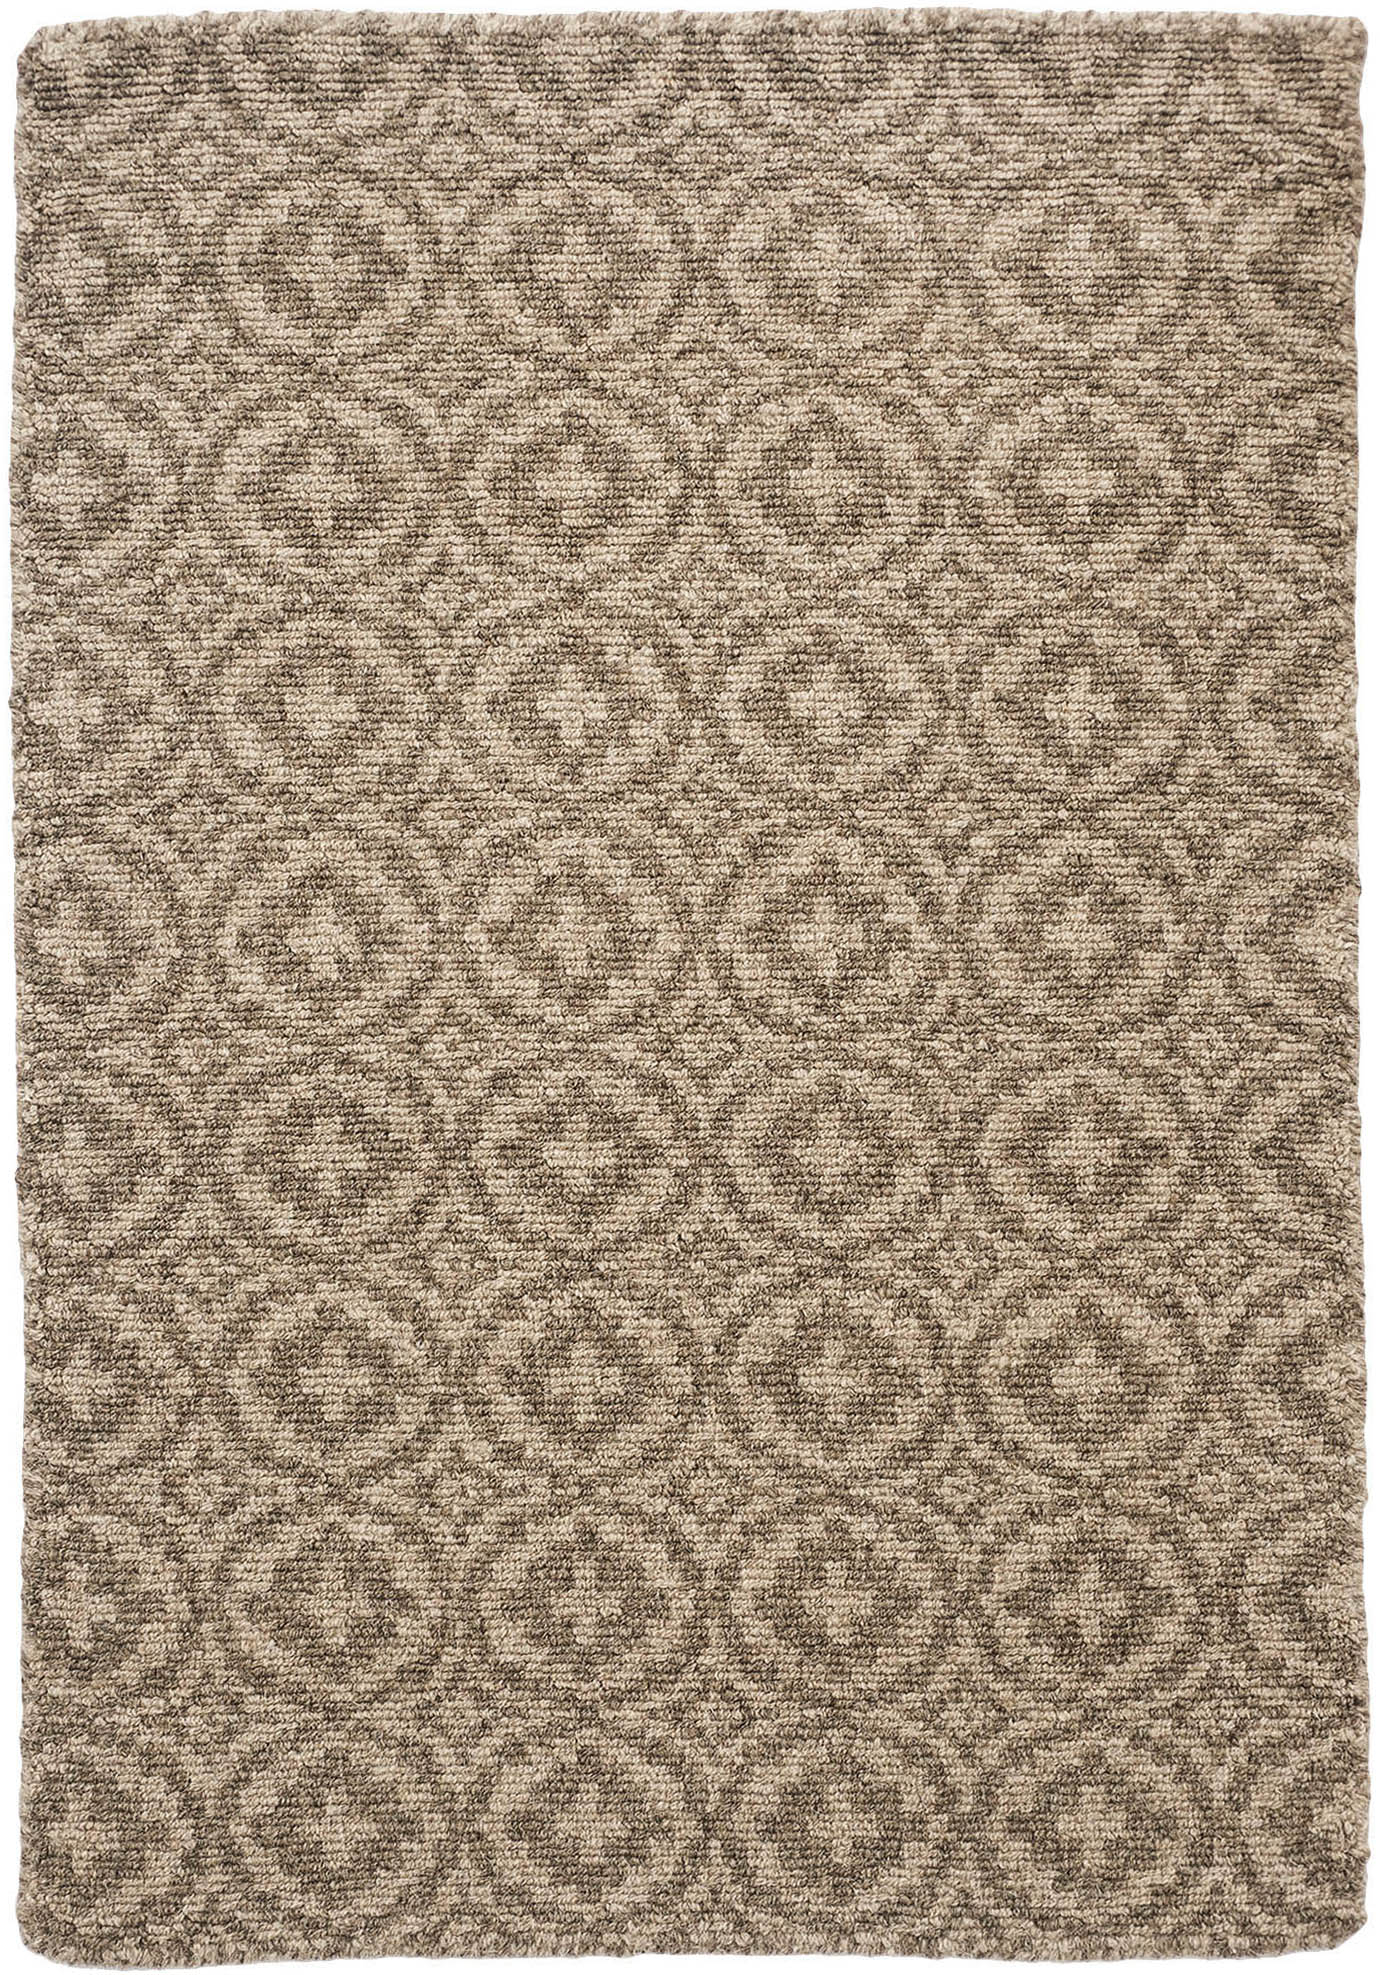 Drysdale Natural Wool Loom Hooked Rug